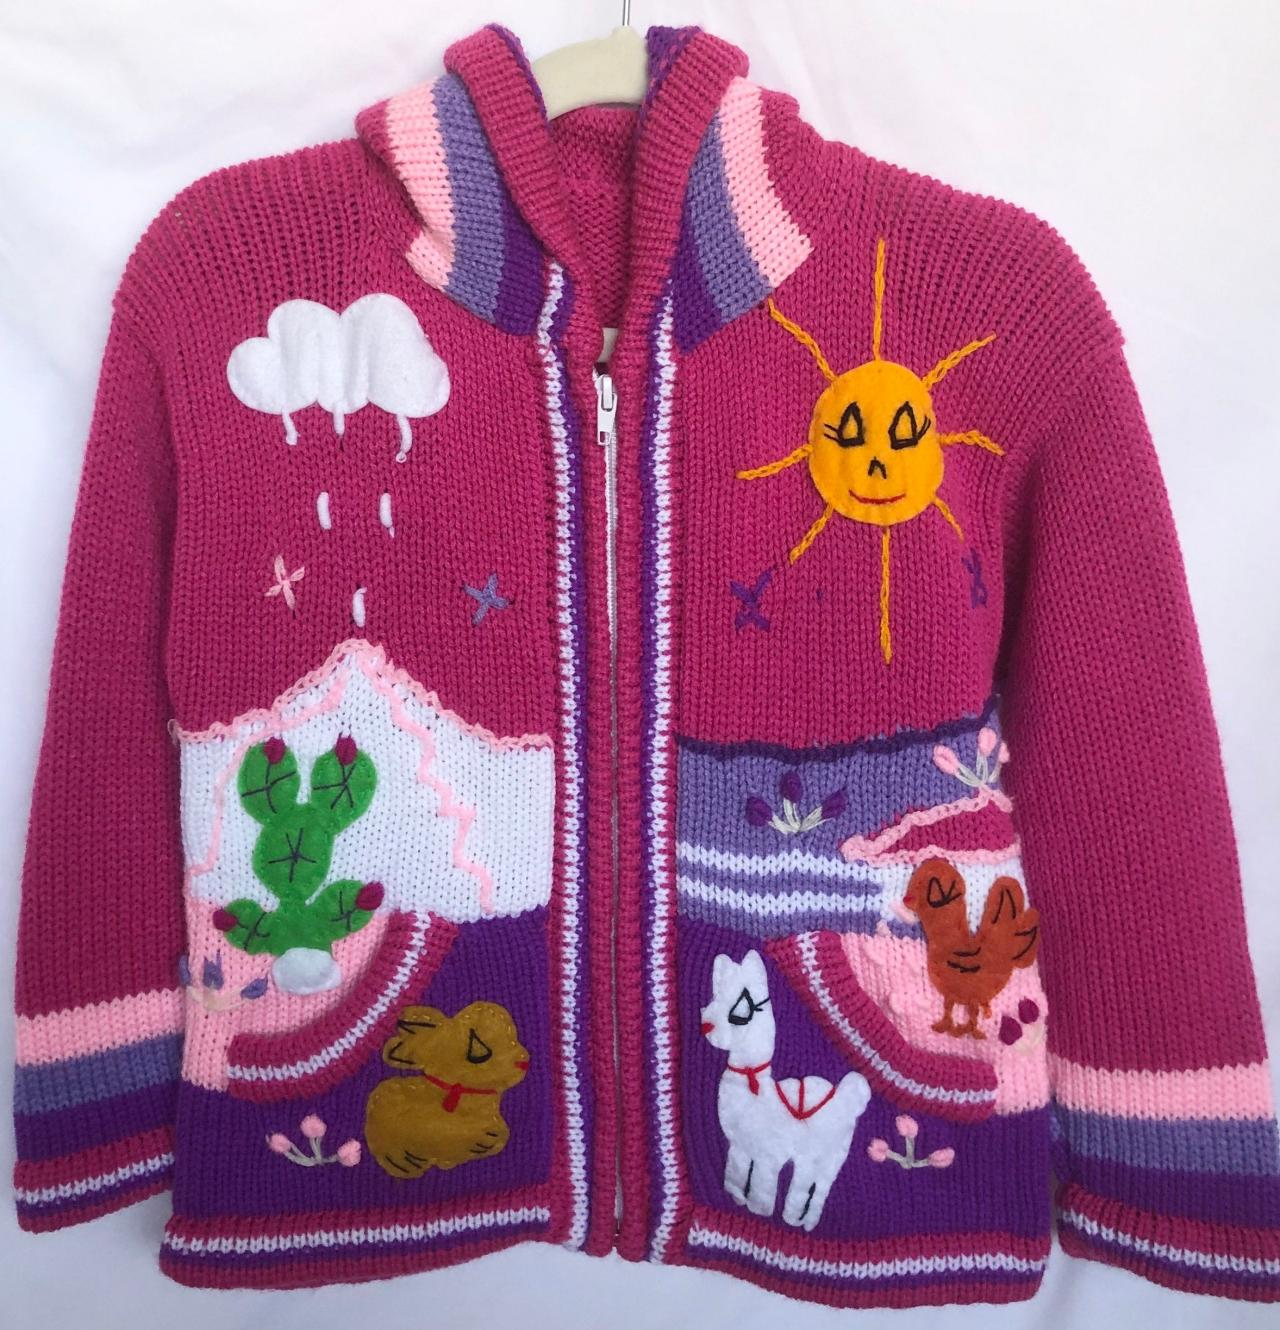 Size 6 Hooded Jacket, Magenta Jacket, Kids Jacket, Handmade Jacket, Knitwear Jacket, Children Sweater, Long Sleeve Jacket, Winter Jacket